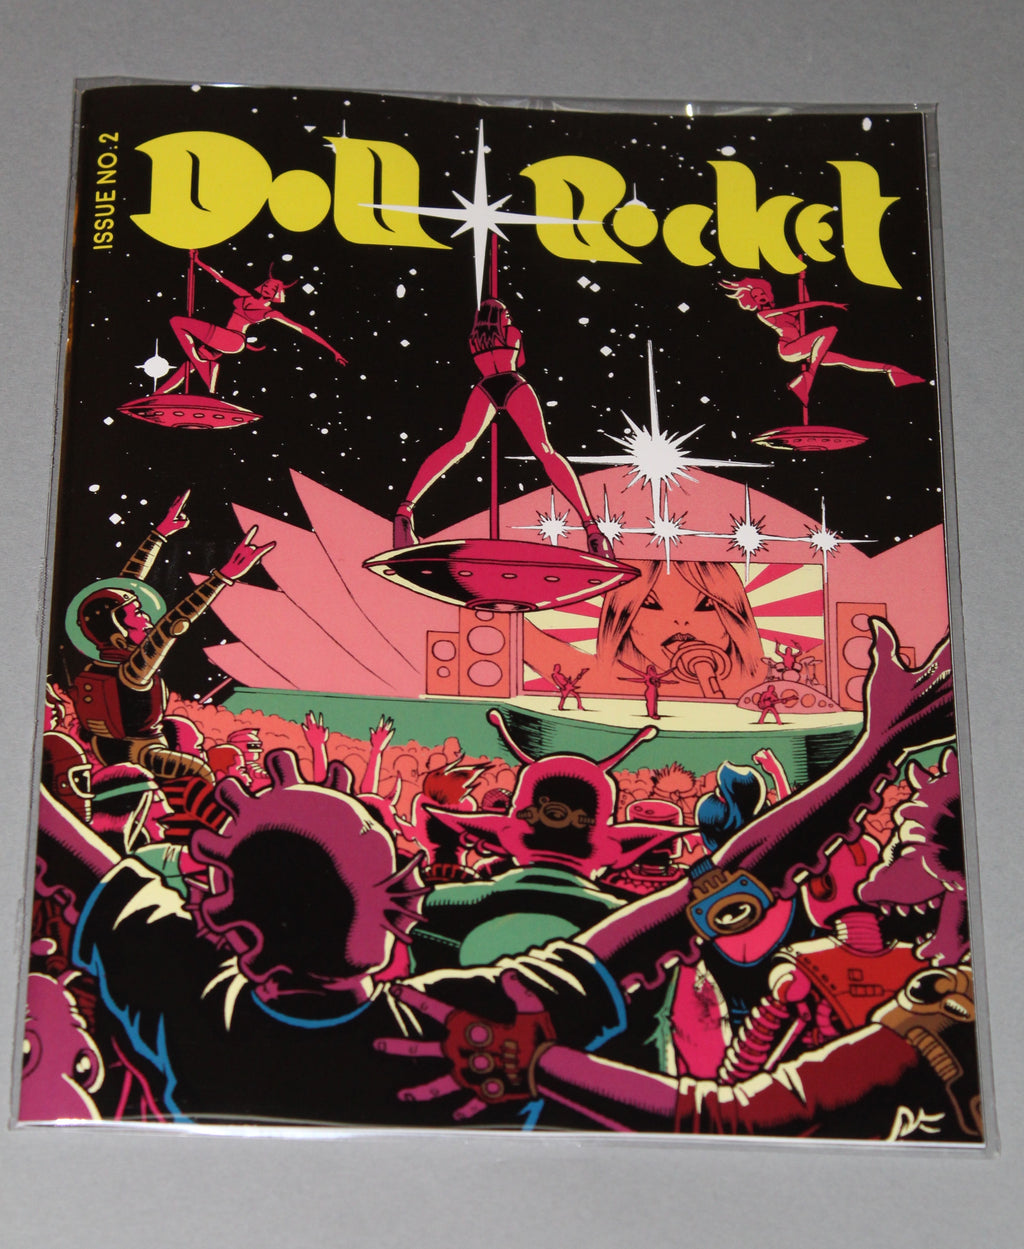 Doll + Rocket Issue No.2